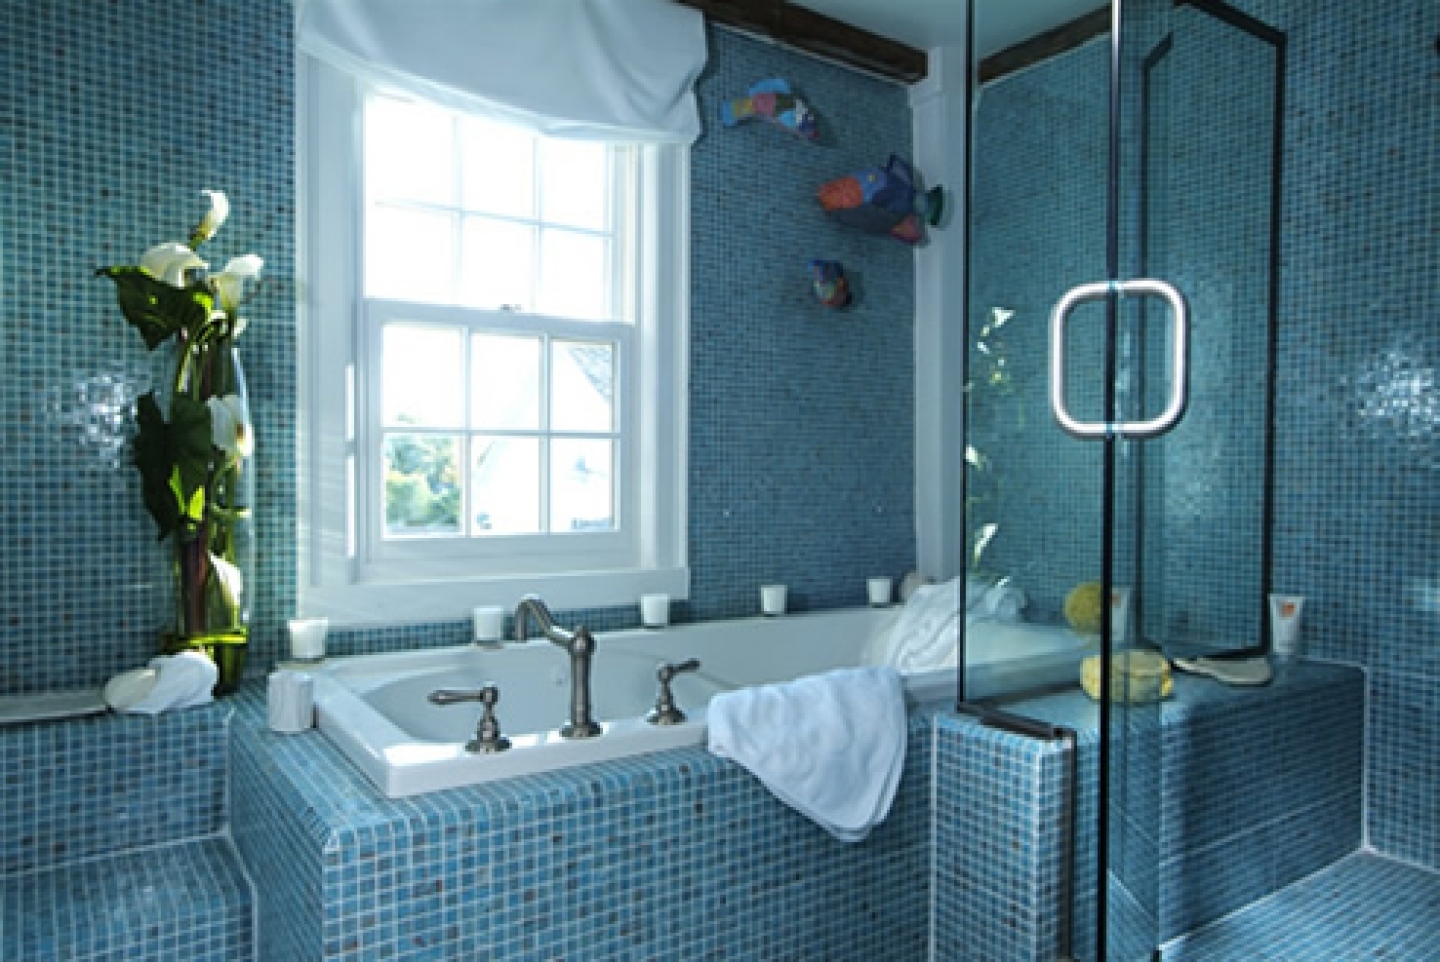 40 vintage blue bathroom tiles ideas and pictures for Bathroom designs images